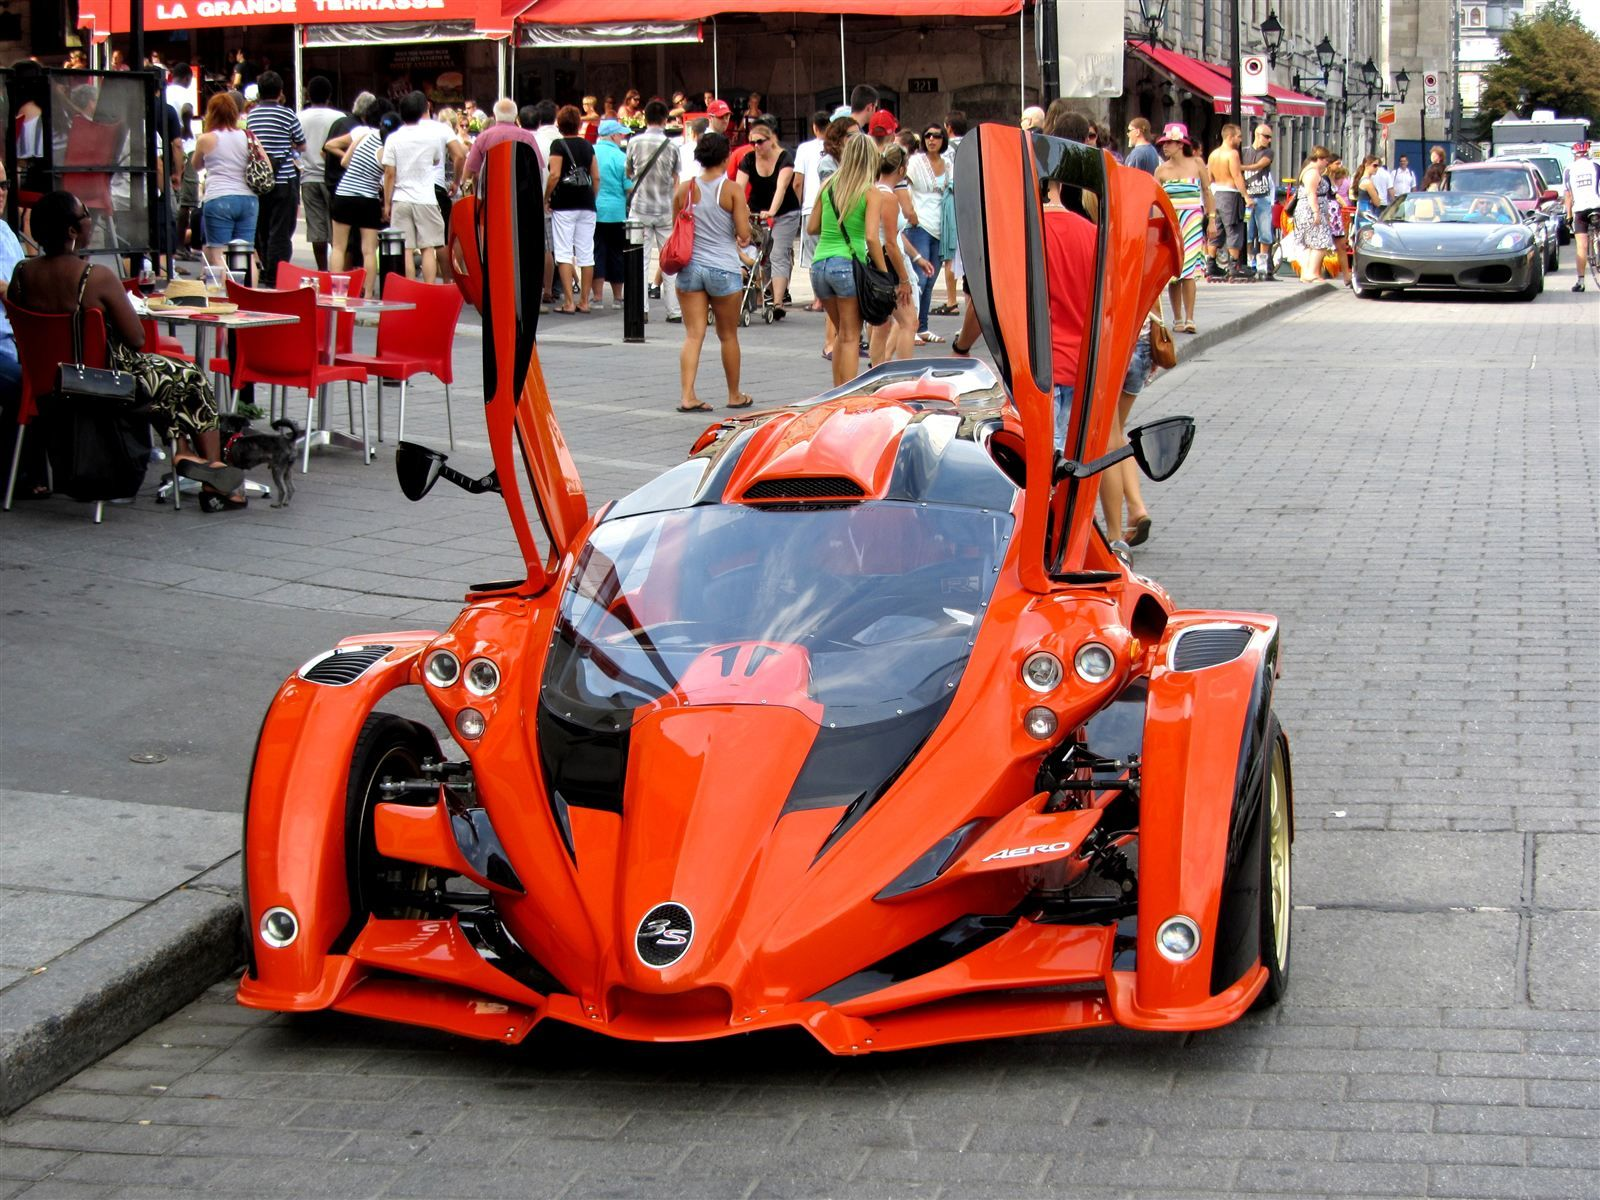 campagna t rex aero 3s yet to be sorted pins pinterest cars vehicle and super car. Black Bedroom Furniture Sets. Home Design Ideas